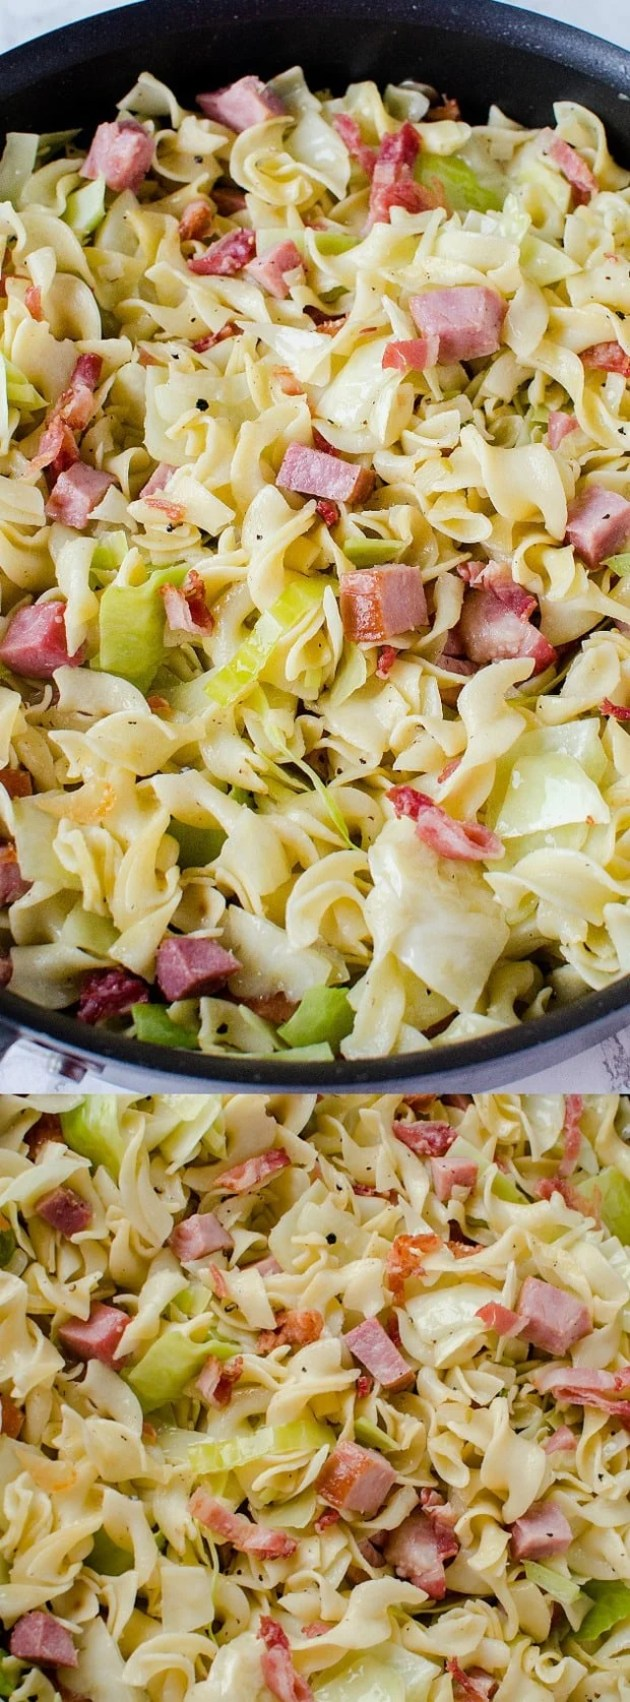 Cabbage and Noodles with Ham Longpin